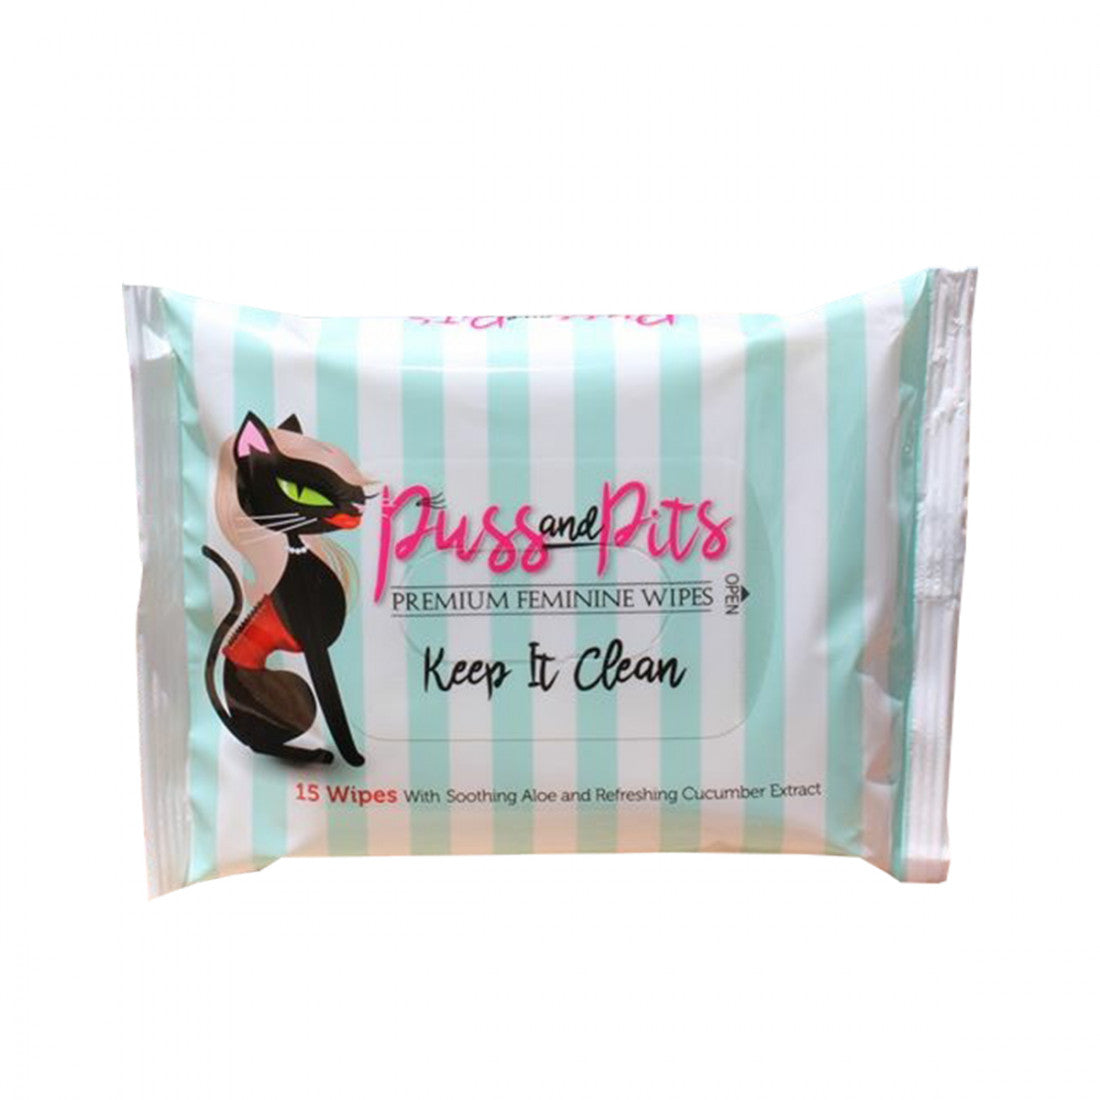 Puss and Pits Premium Feminine Wipes